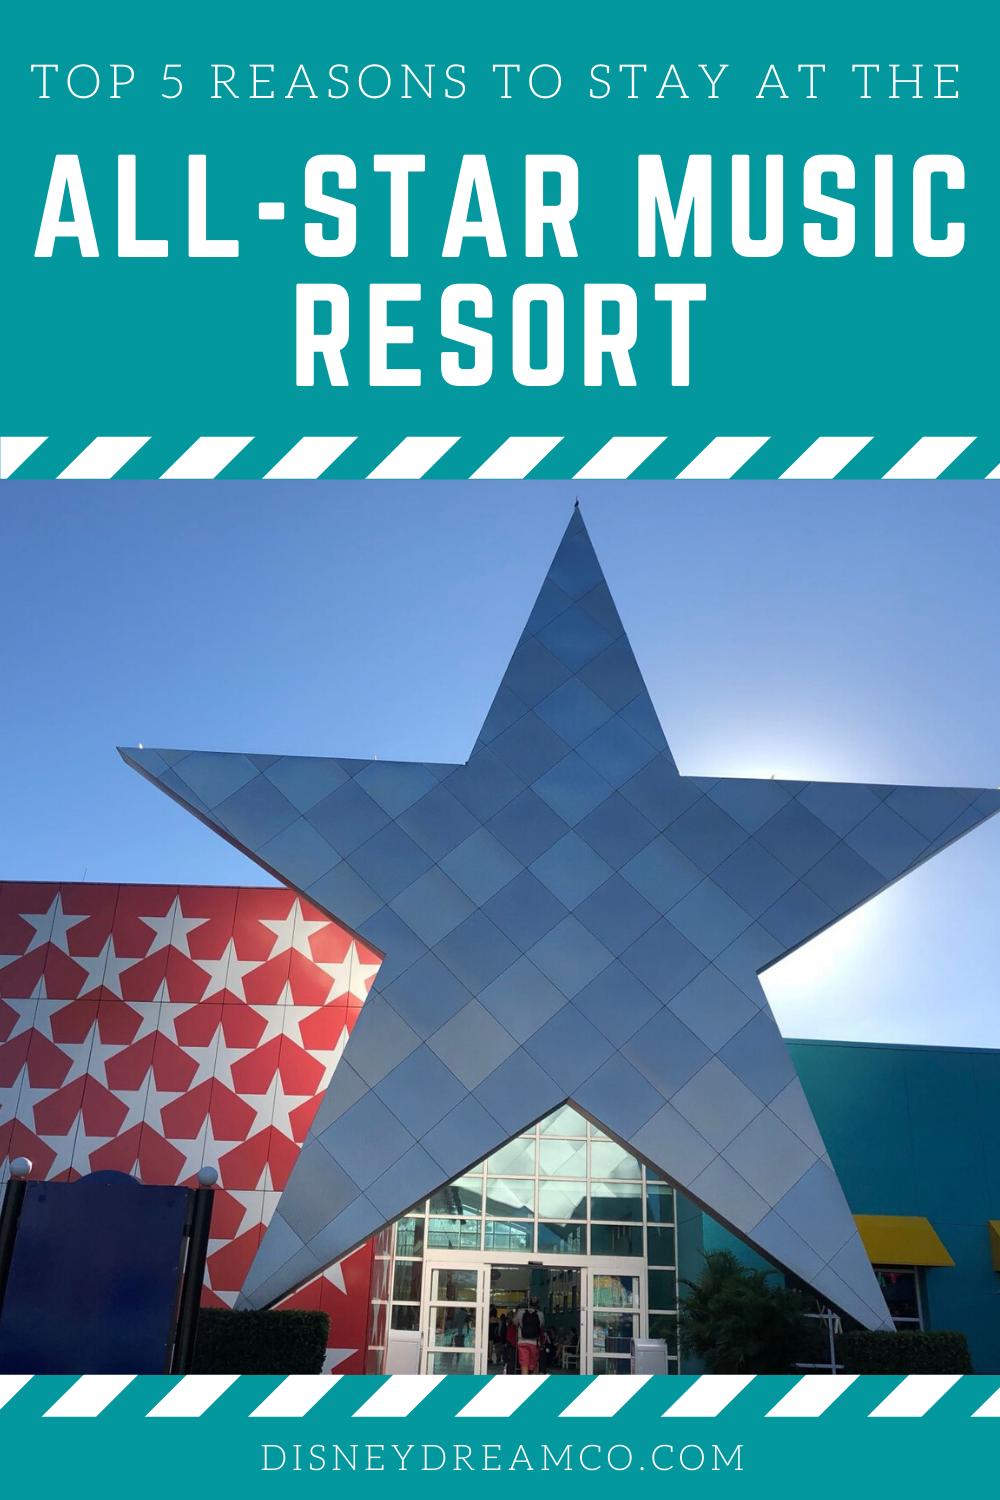 Top Five Reasontop 5 Reason To Stay At The All Star Musics To Stay At Disney S All Star Music Resort Disney World Tips And Tricks Disney Tips Disney World Trip